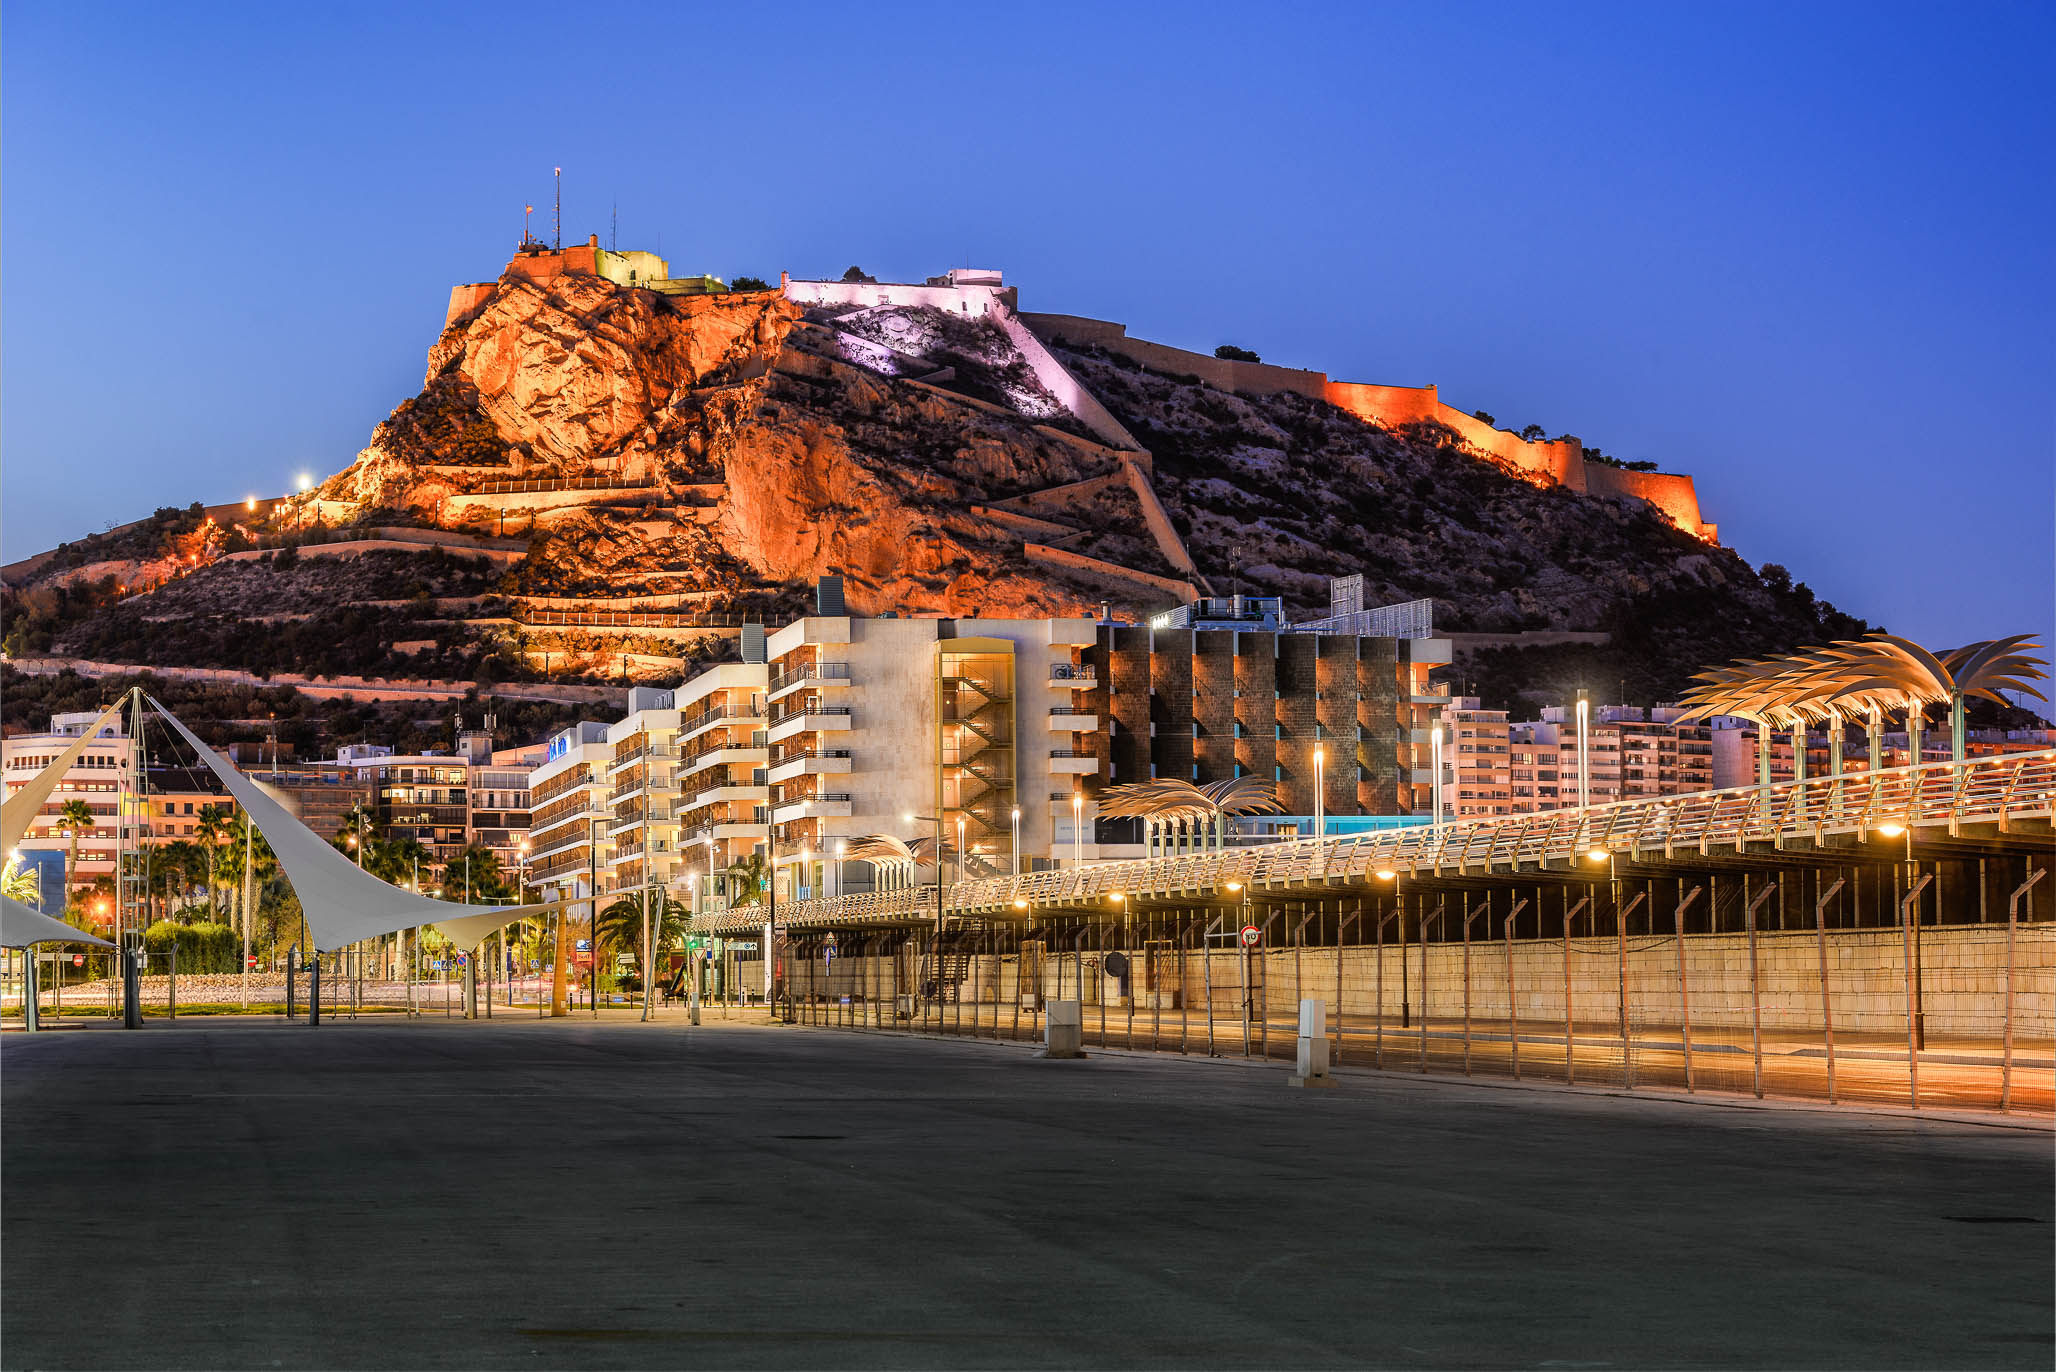 alicante commercial photographer